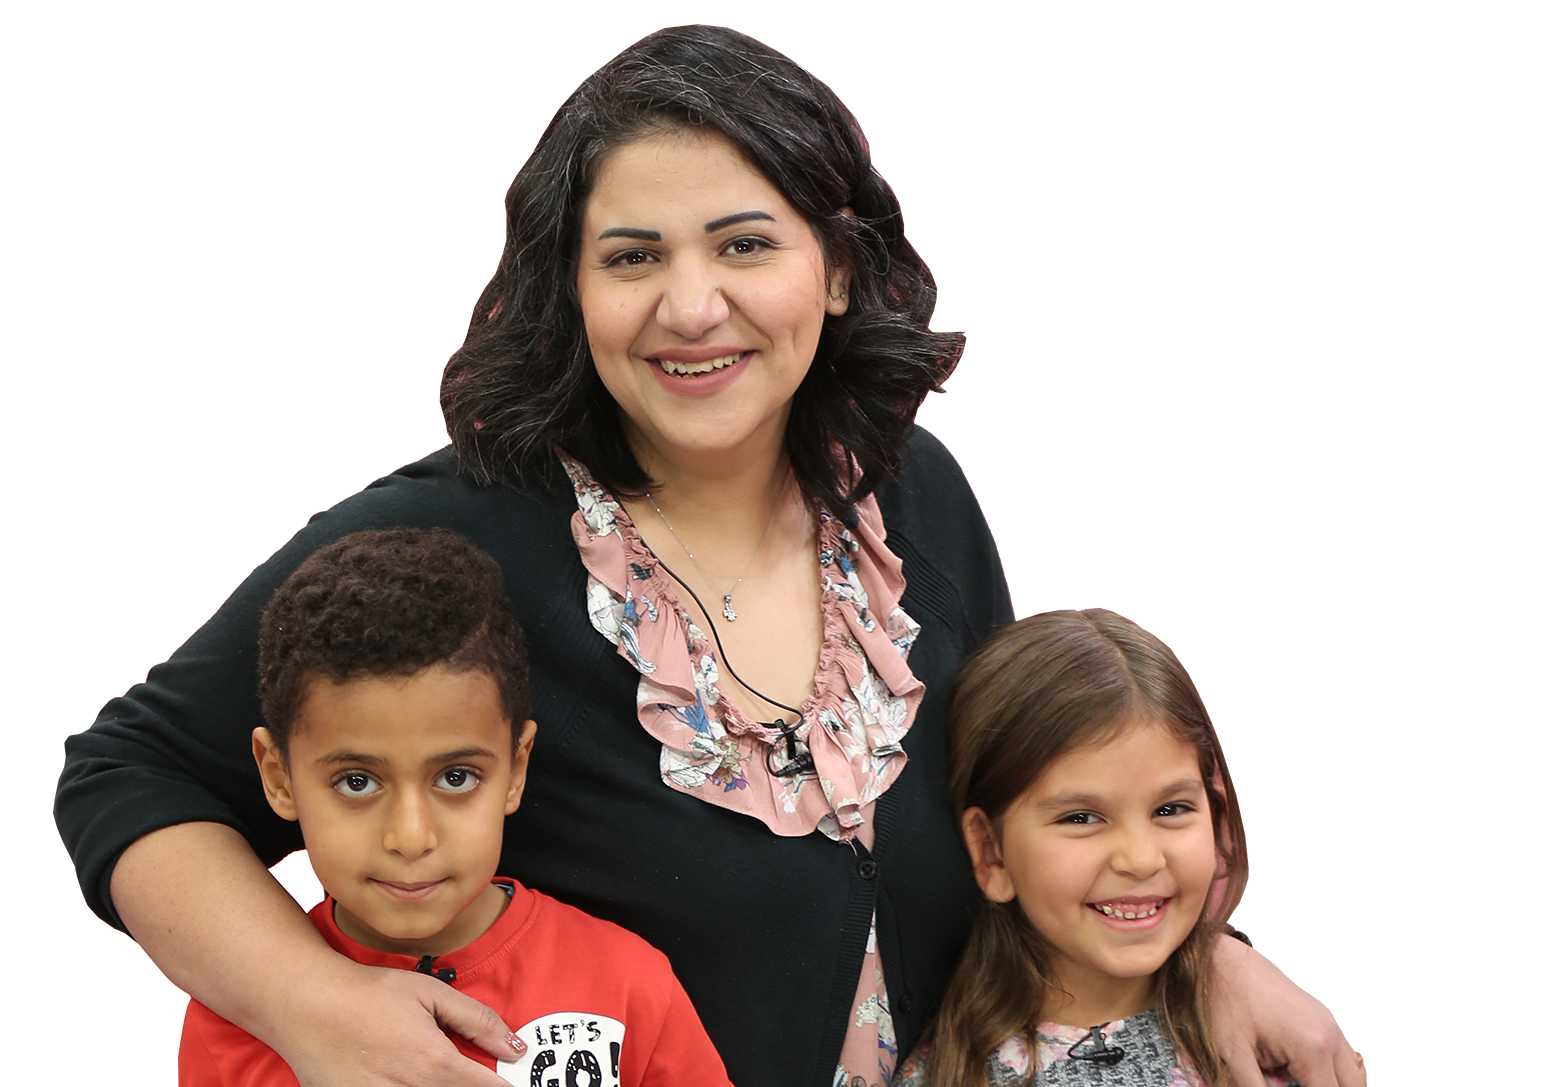 Asnat Awad, presenter of parenting show Keys to My Kid, with two child guests